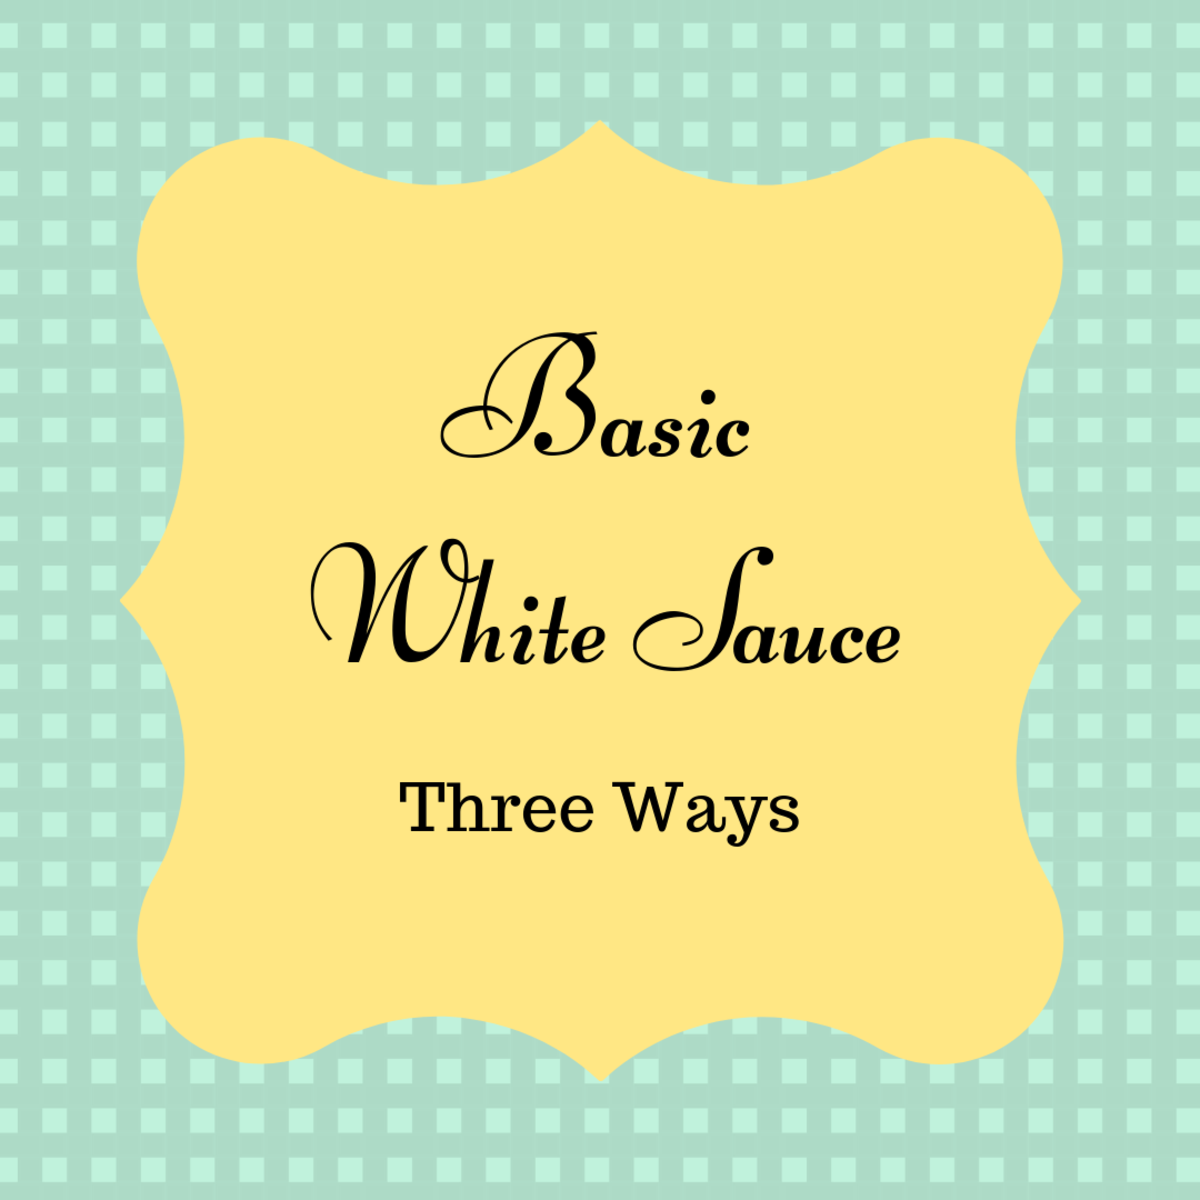 How to Make a Basic White Sauce 3 Ways (With Photos)